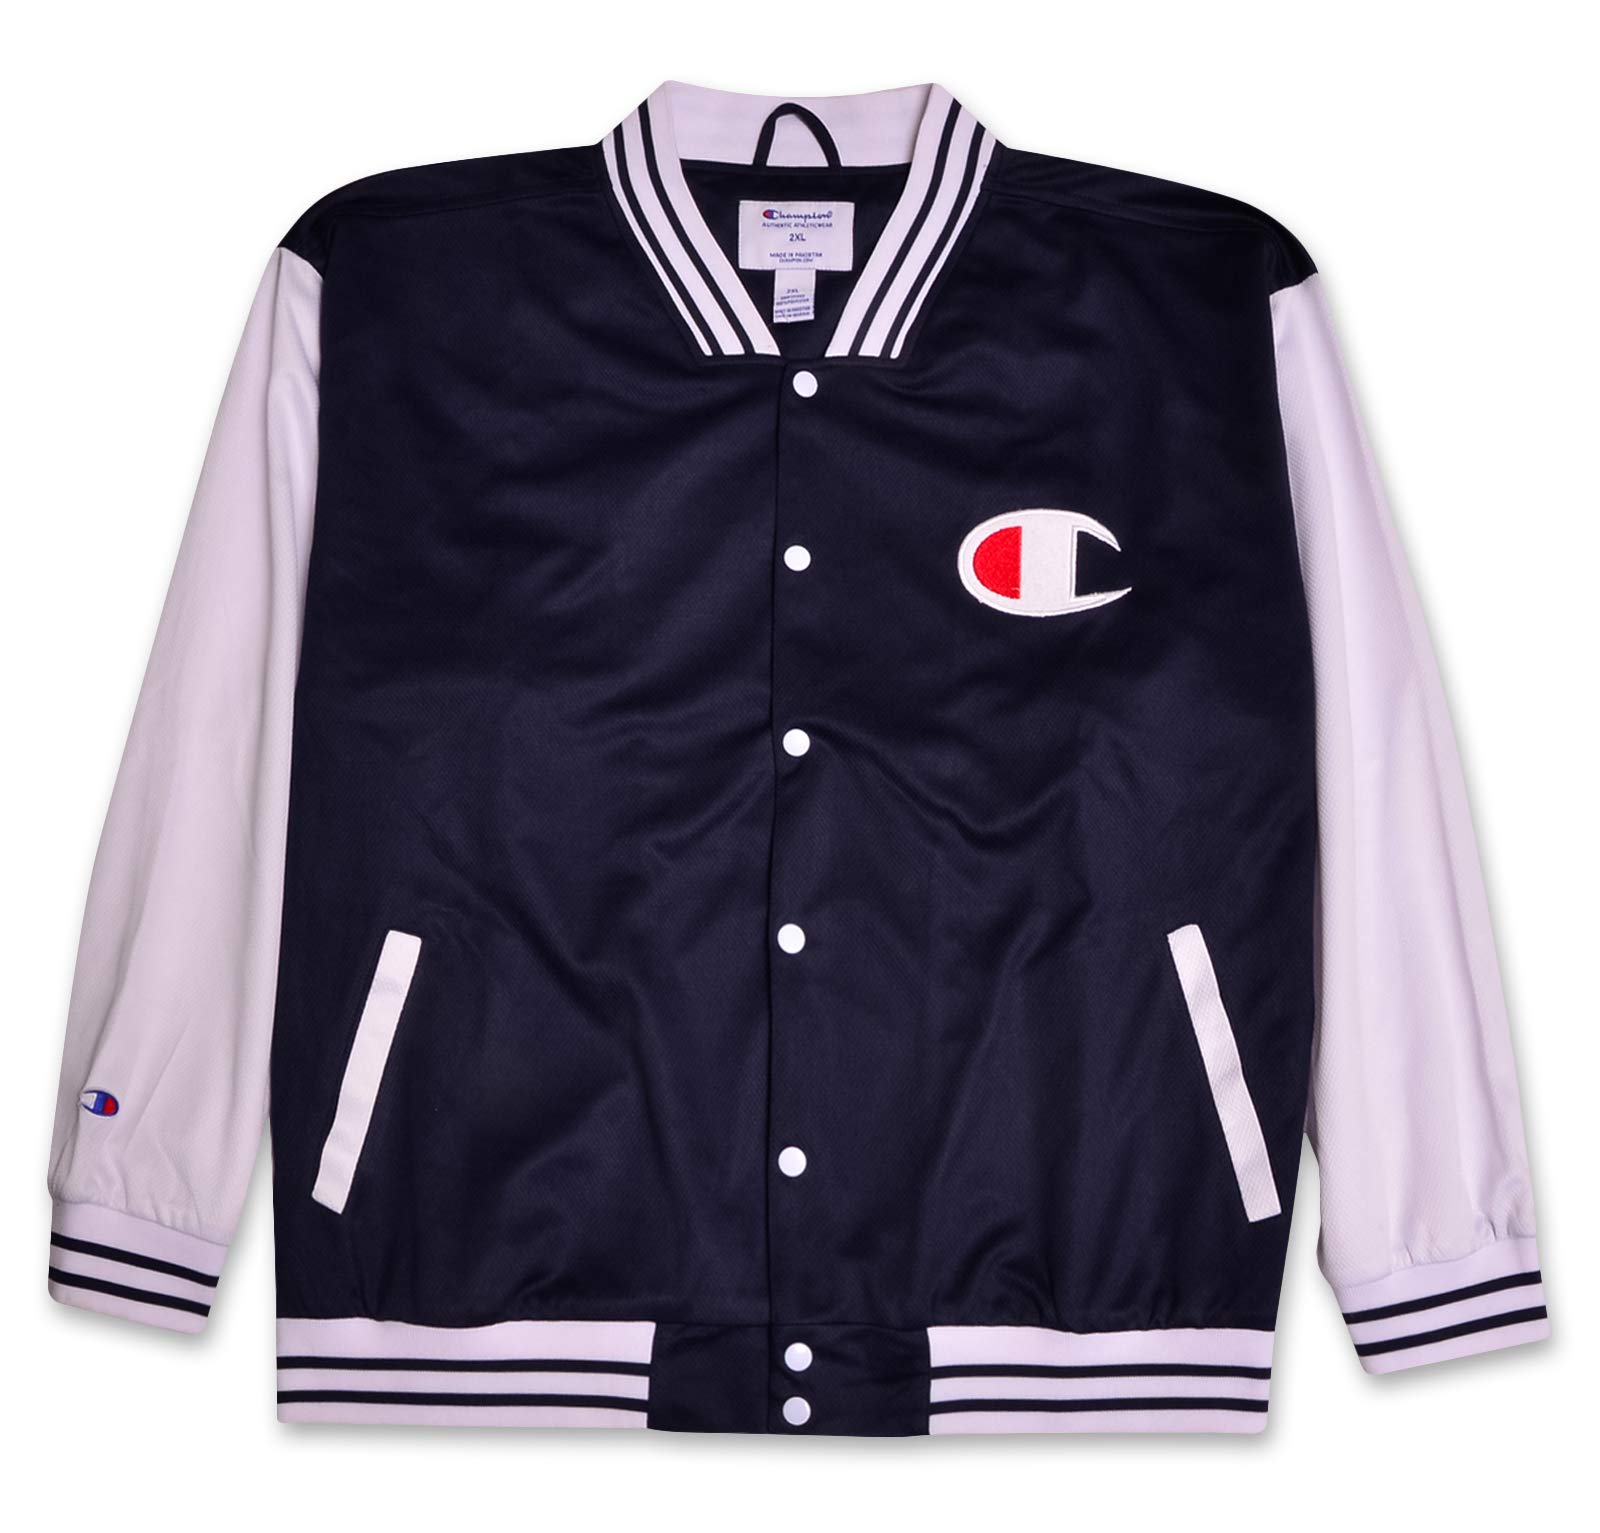 Champion Mens Big and Tall Lightweight Varsity Track Jacket Jacket Navy White 3XT by Champion